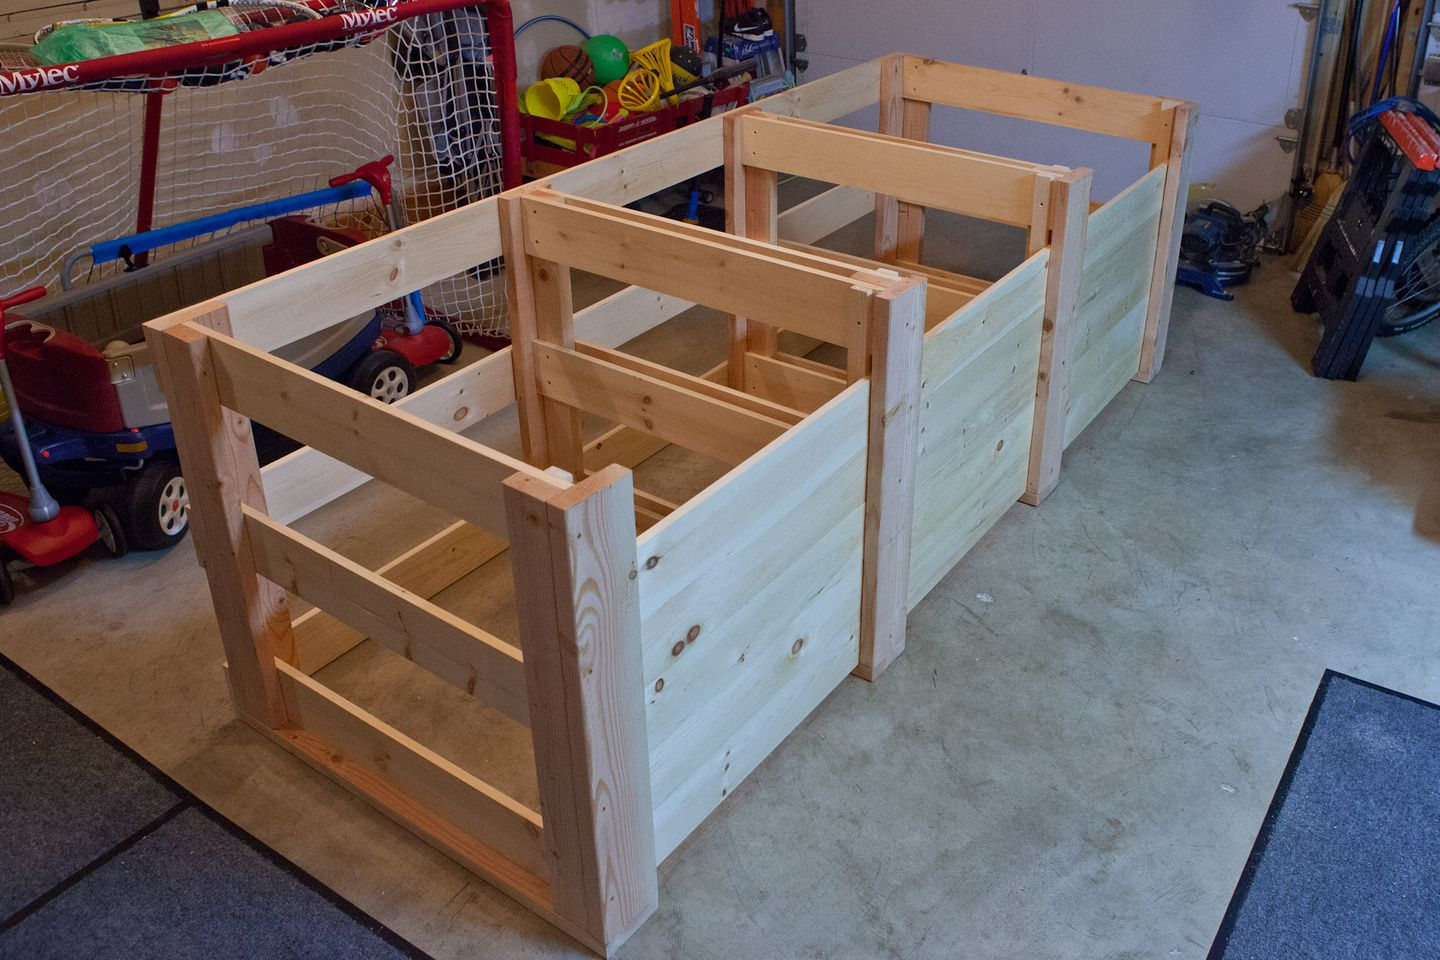 Diy Compost Bin Plans Wooden Tool Store Diy Chicken Coop Plans Wooden